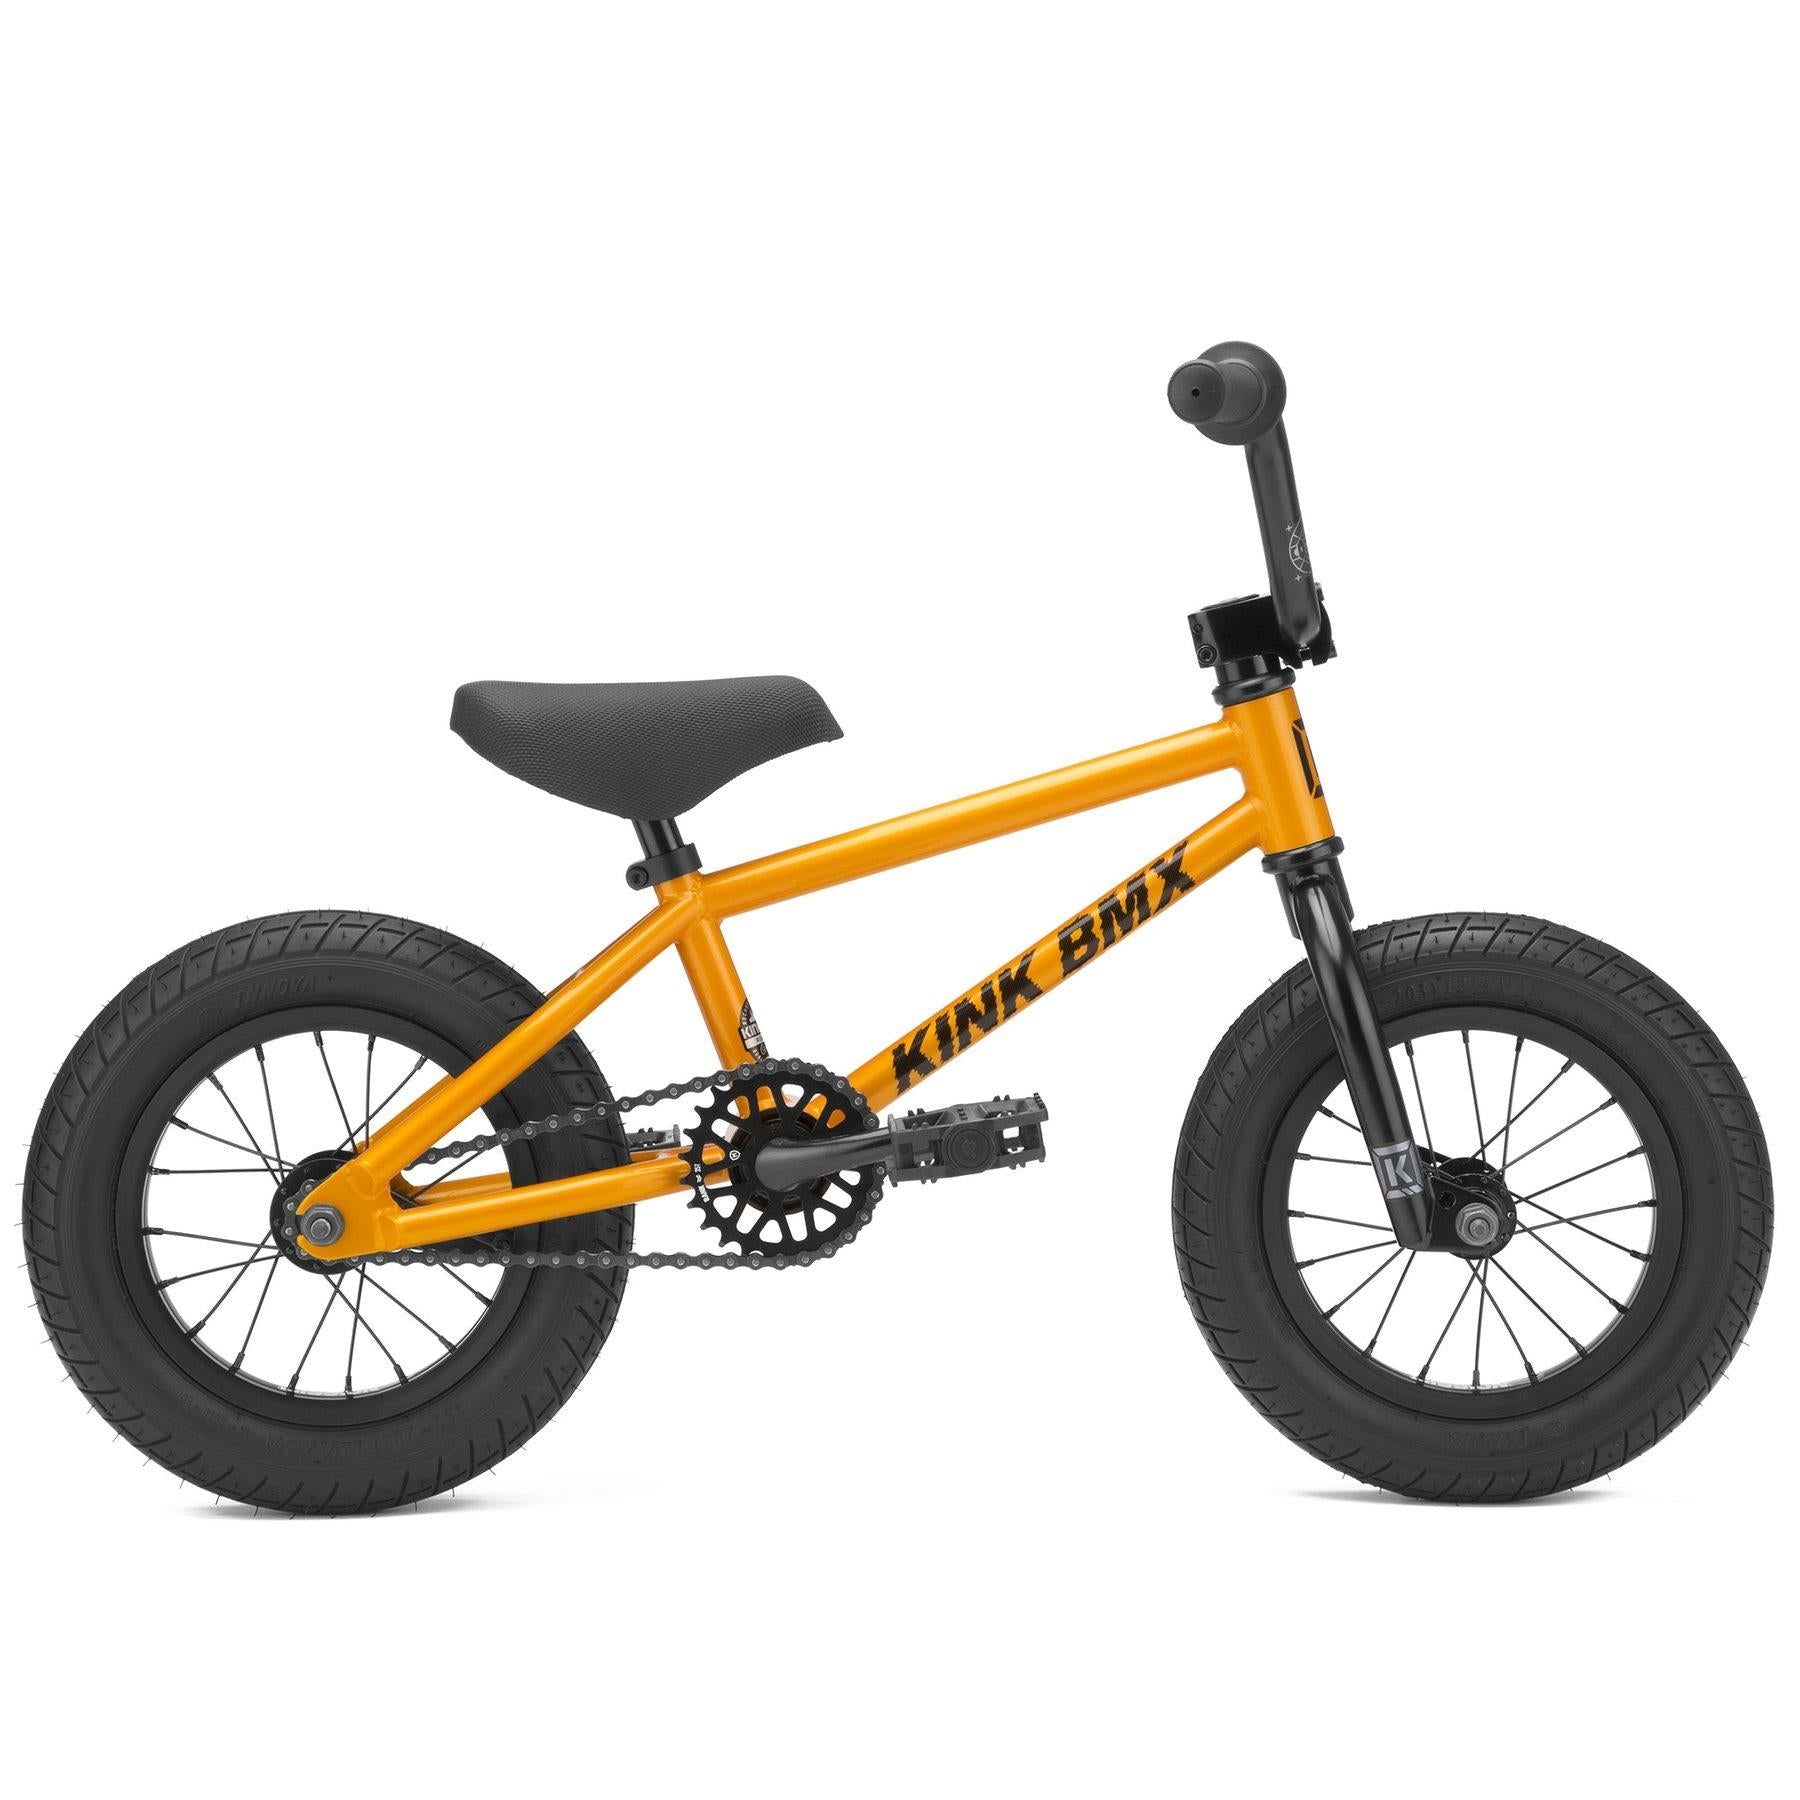 "Kink Roaster 12"" BMX Bike 2021"